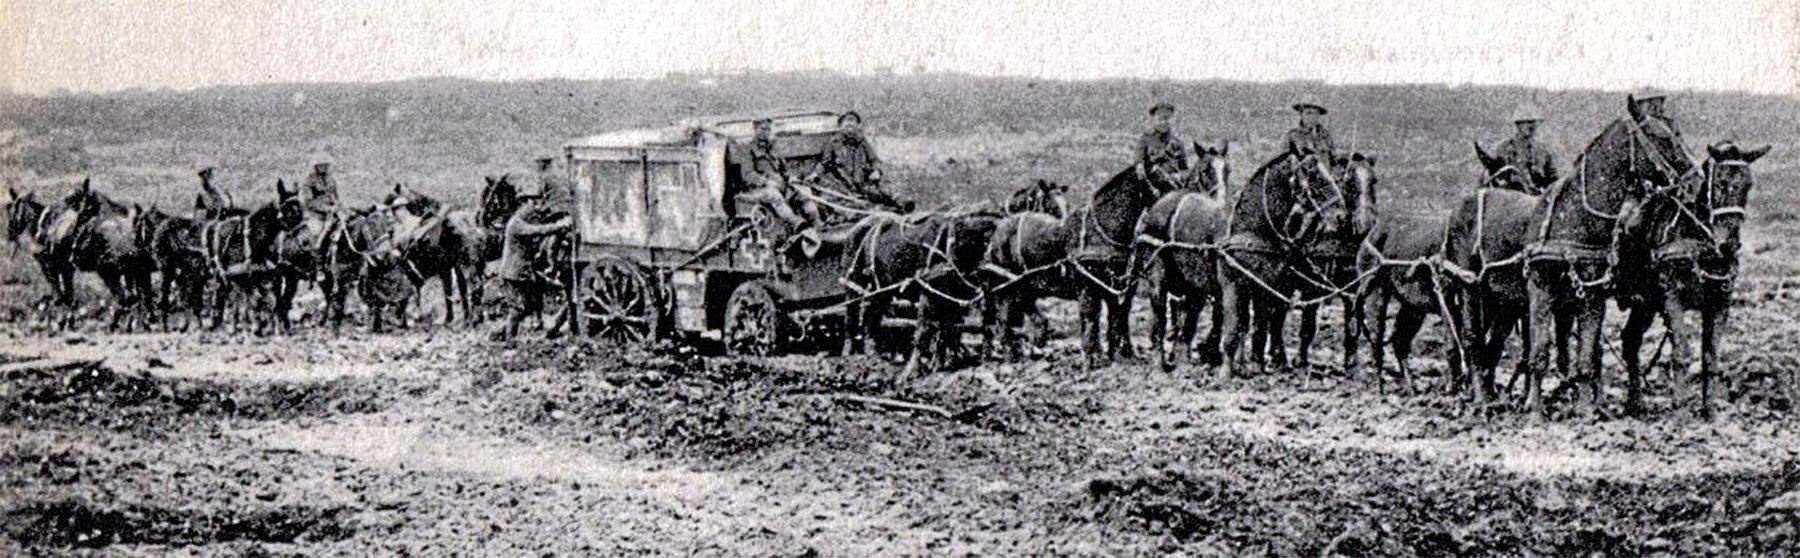 FIELD OF BATTLE: A mule train moves supplies during the First World War I. Drivers performed a dangerous job.